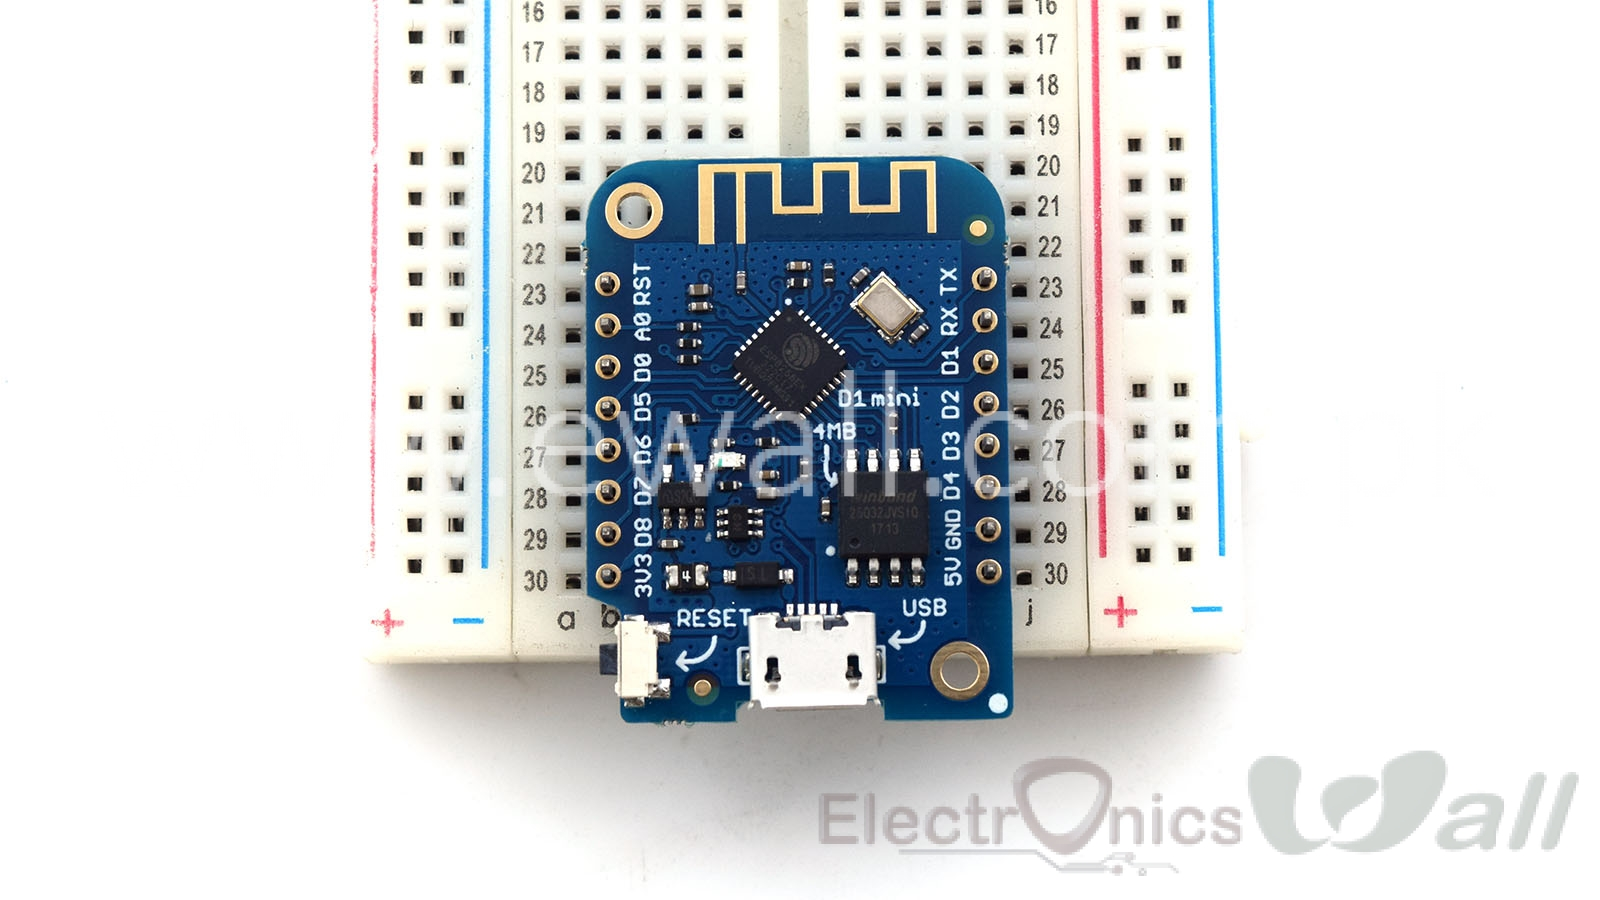 Wemos D1 MINI V3.0  4MB flash based on ESP-8266EX